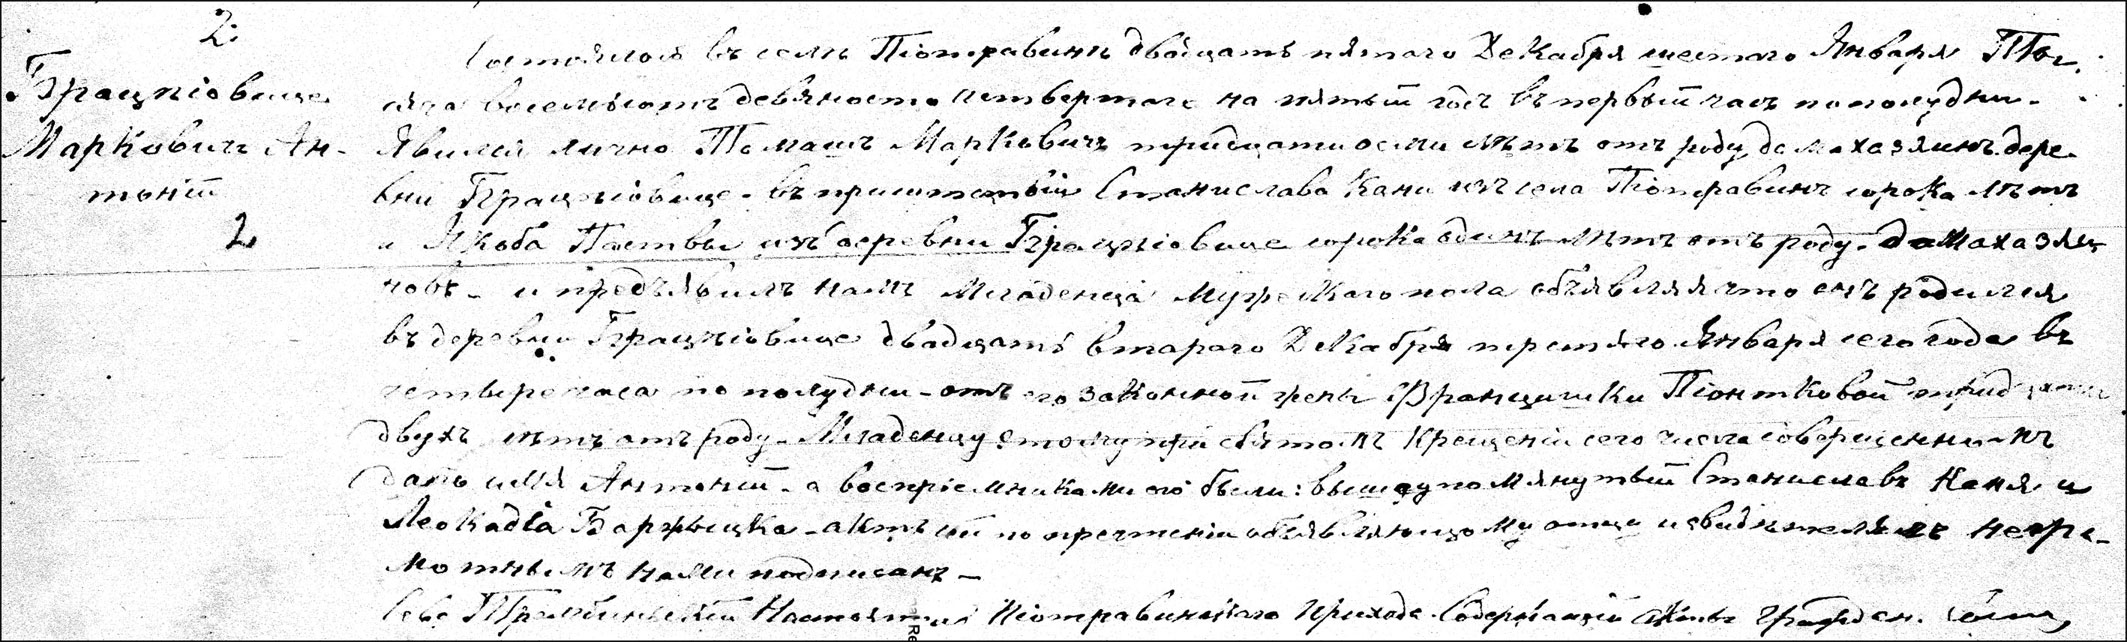 The Birth and Baptismal Record for Antoni Markiewicz - 1895